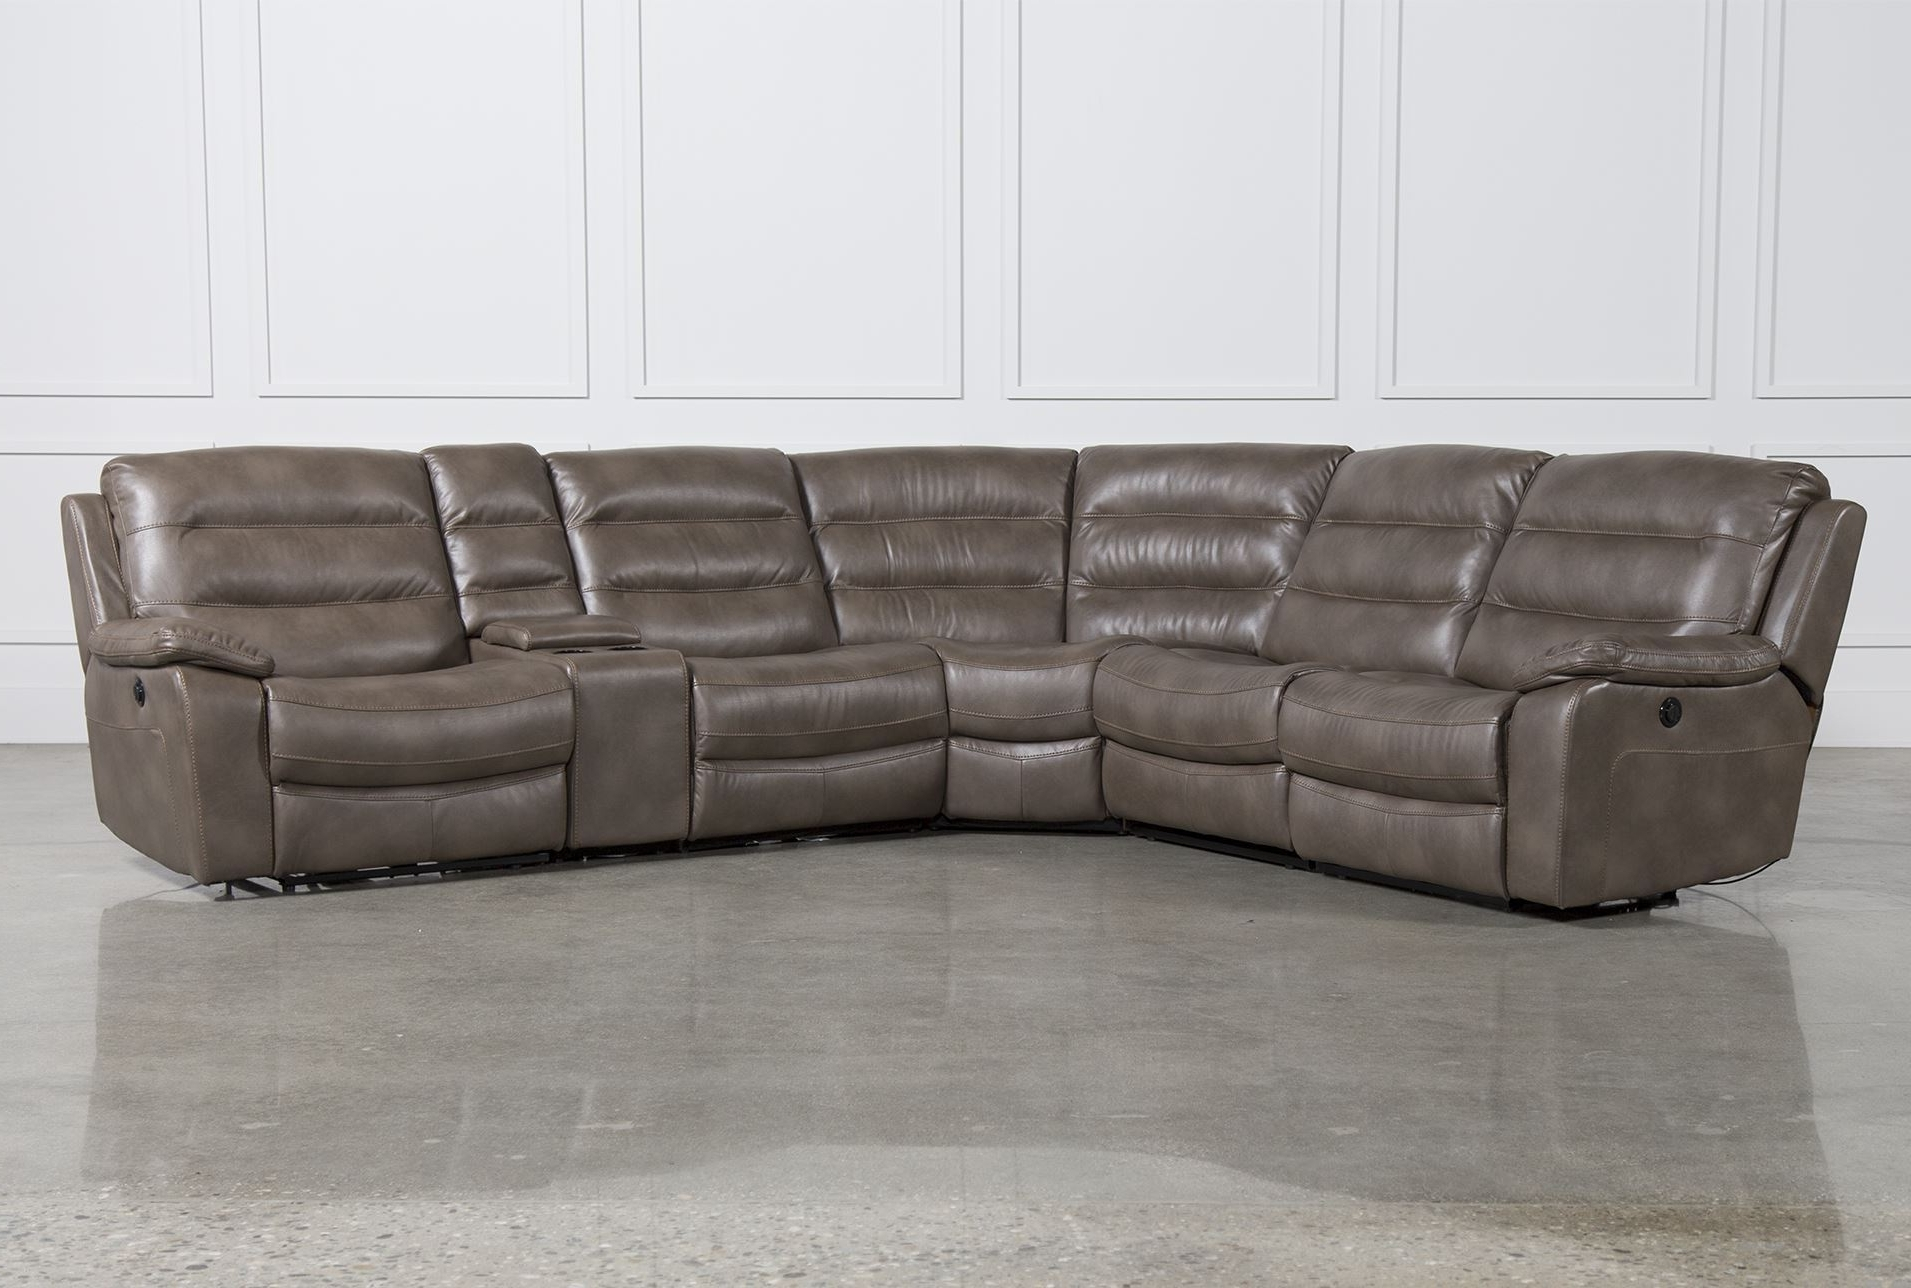 2019 Unique 6 Piece Sectional Sofa 32 In Living Room Sofa Ideas With 6 Throughout 6 Piece Leather Sectional Sofas (View 2 of 20)